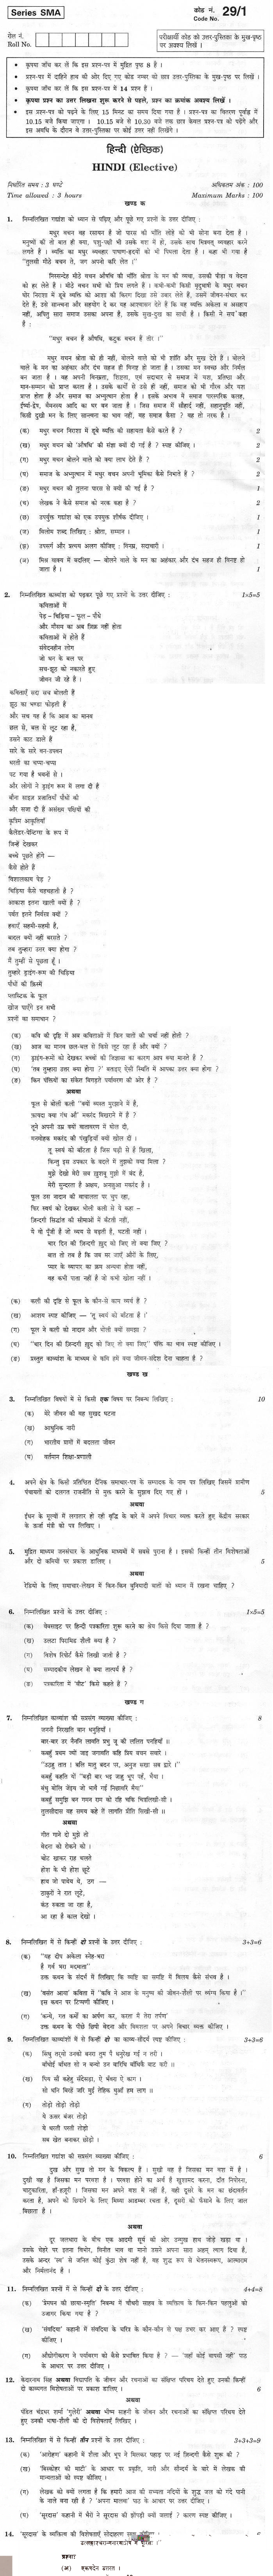 CBSE Class XII Previous Year Question Paper 2012 Hindi (Elective)